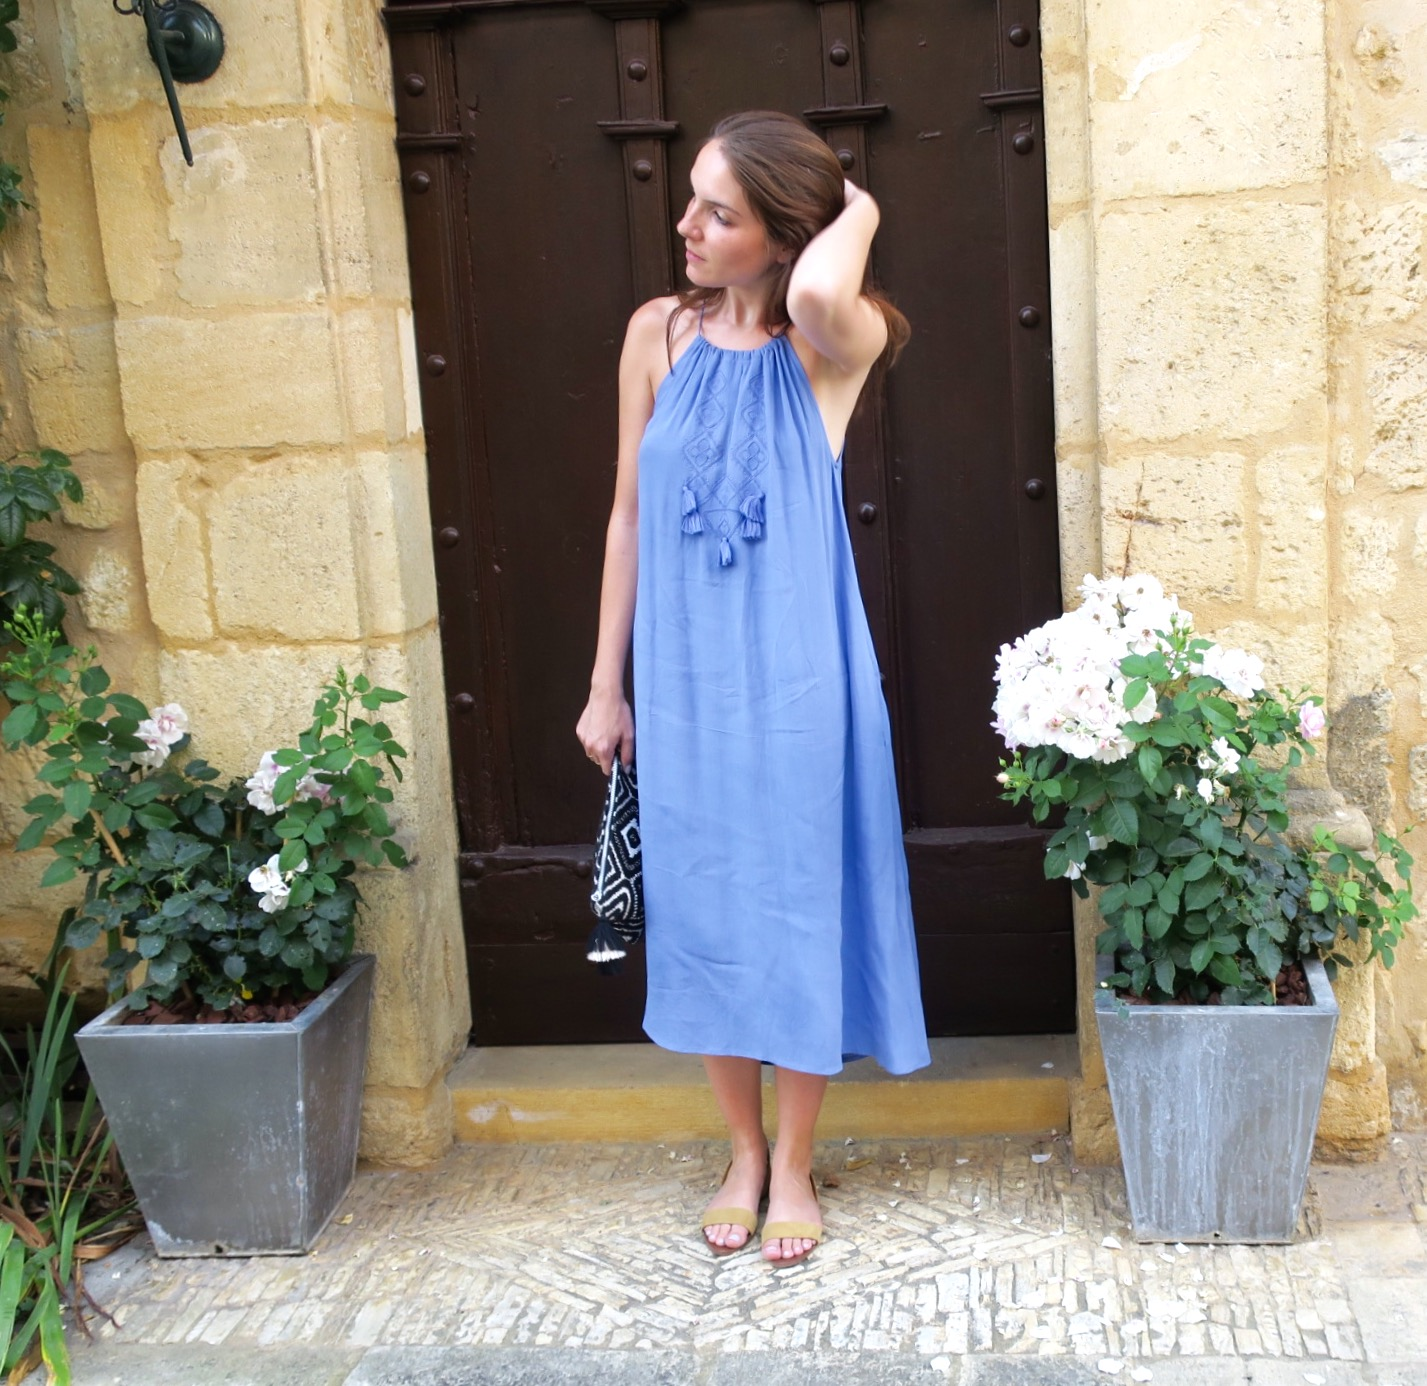 DISCOVERING DORDOGNE - The Grown Up Edit